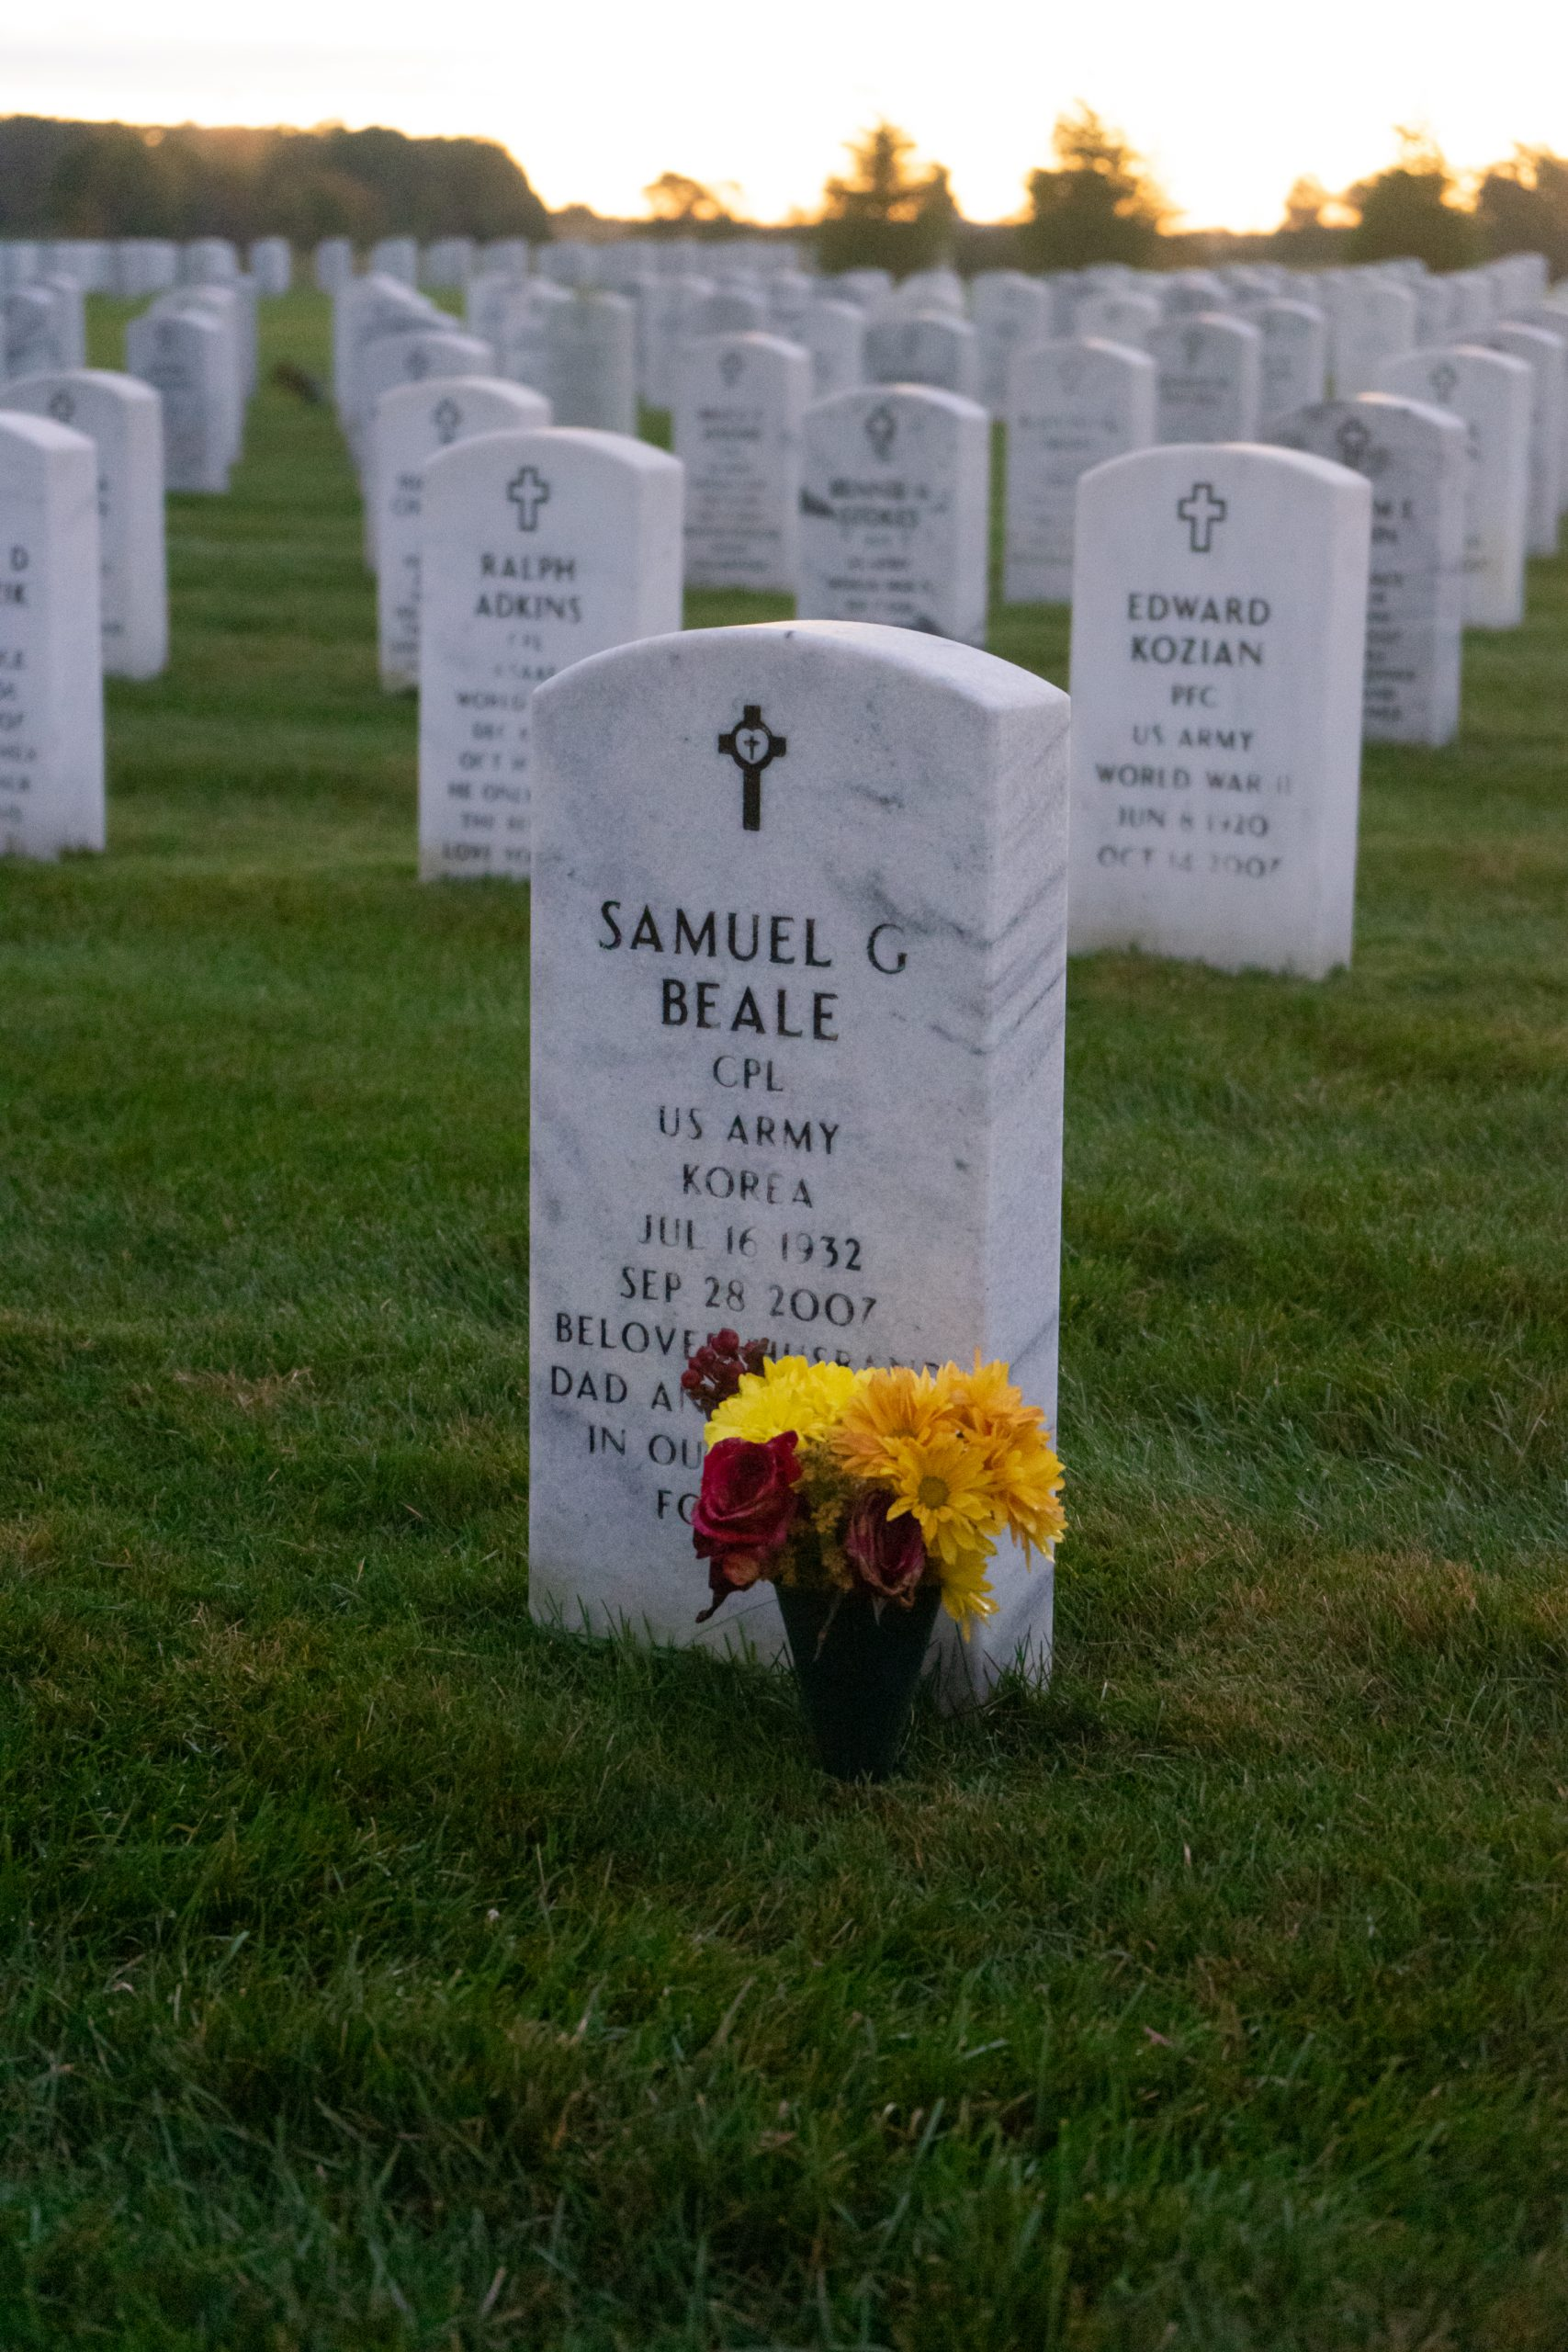 A headstone with flowers at the Great Lakes National Cemetery